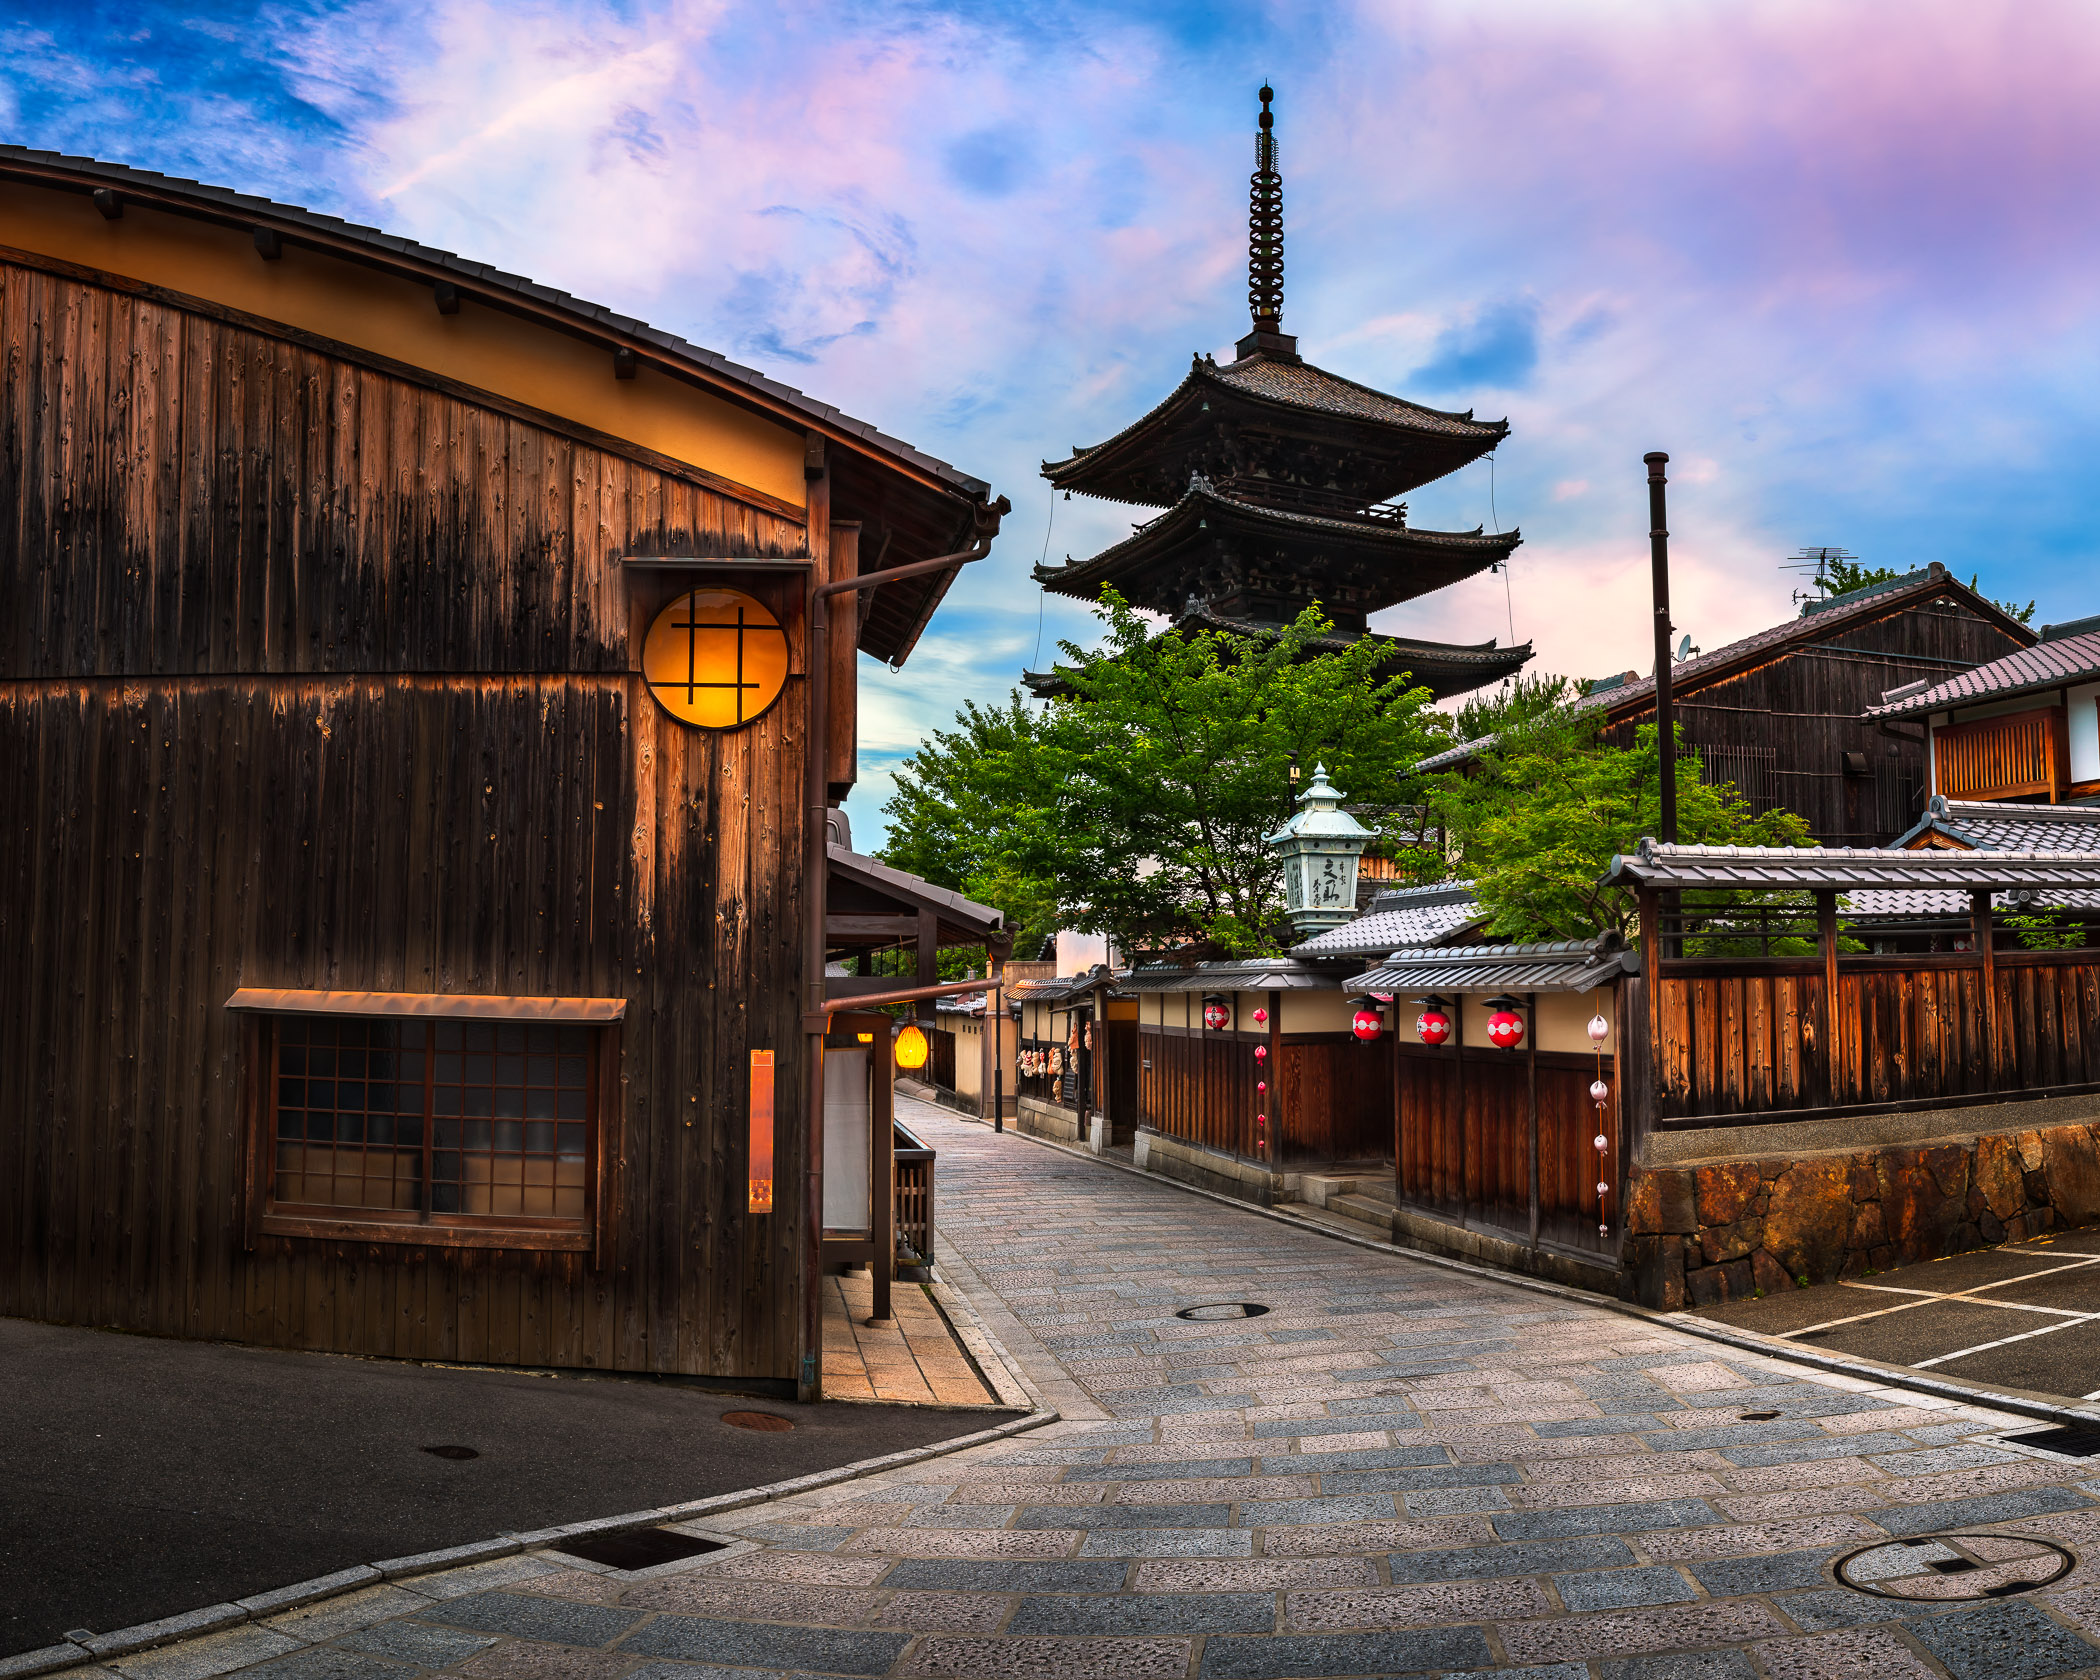 Yasaka Pagoda and Sannen Zaka Street in the Morning, Higashiyama, Kyoto, Japan